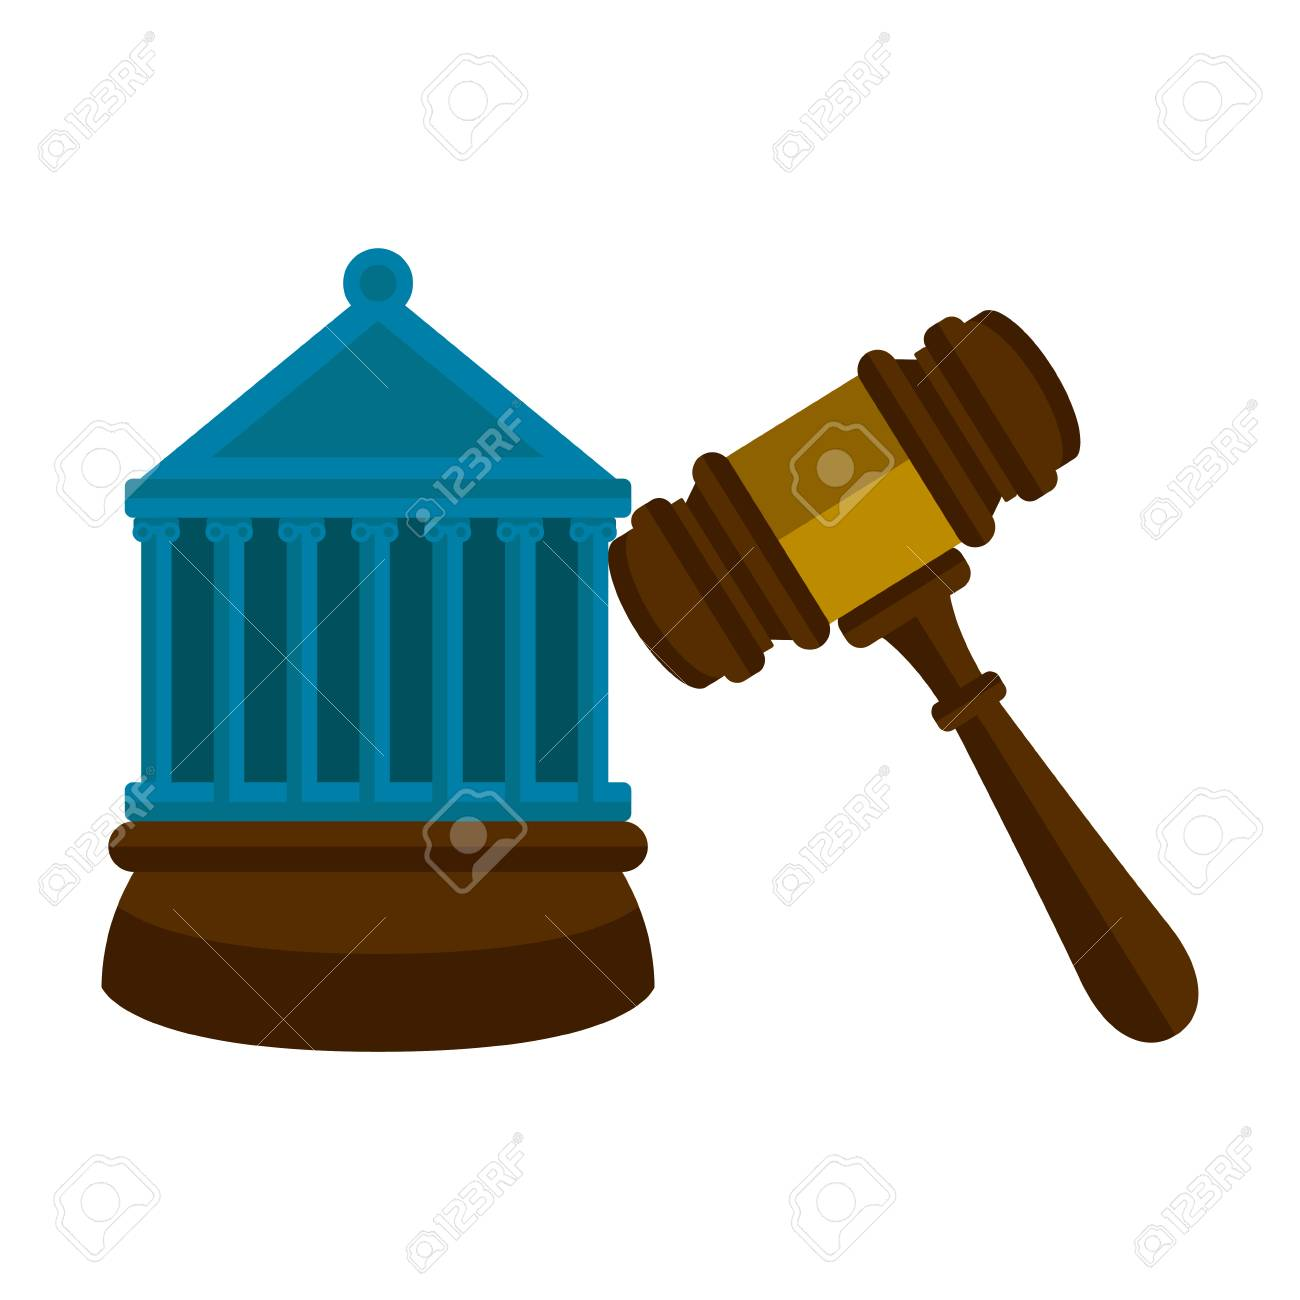 Wooden Gavel With A Court Building Vector Illustration Design